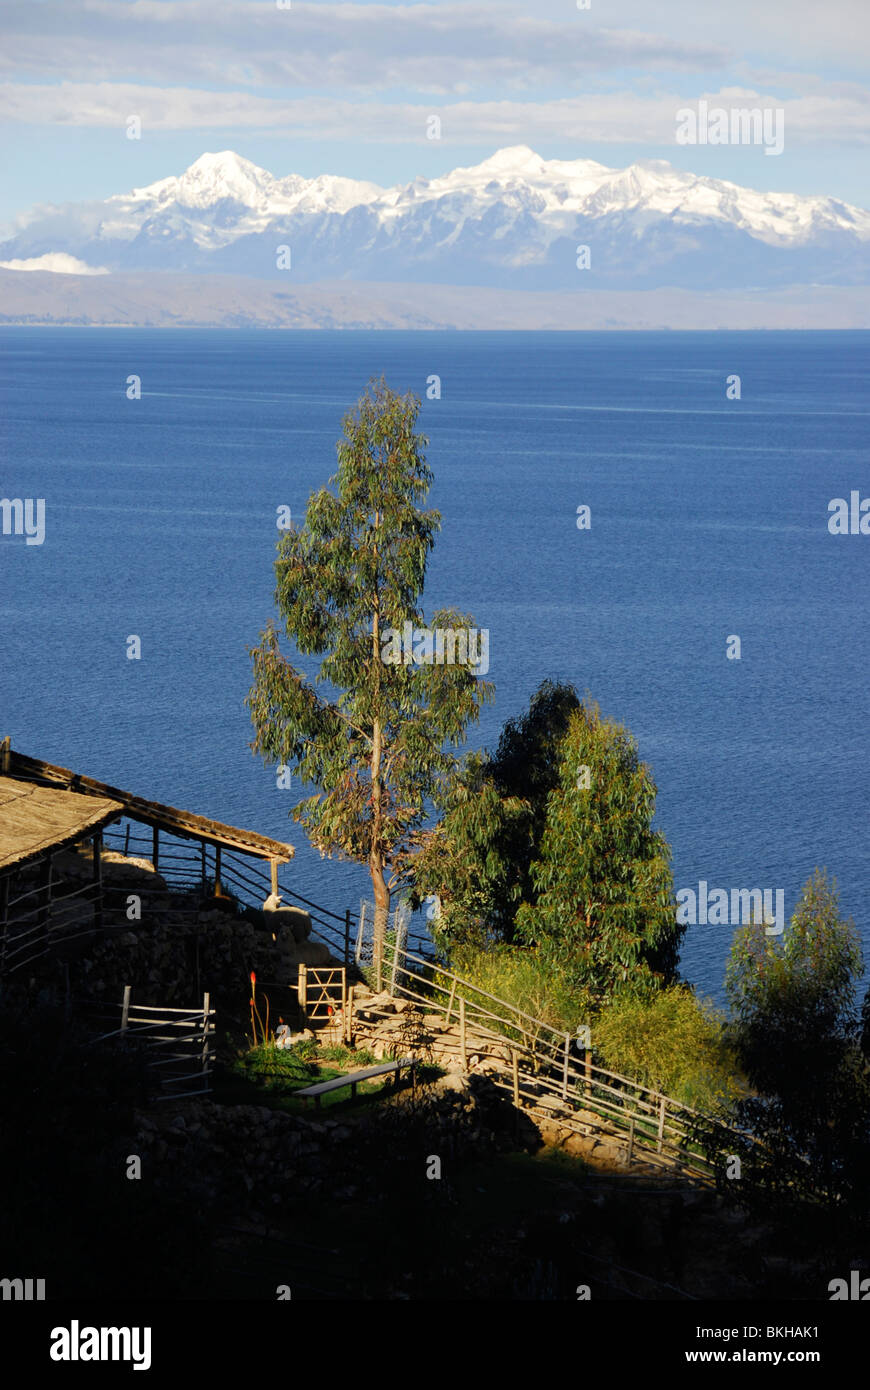 Snowy mountains as seen from Isla del Sol, Bolivia, South America - Stock Image